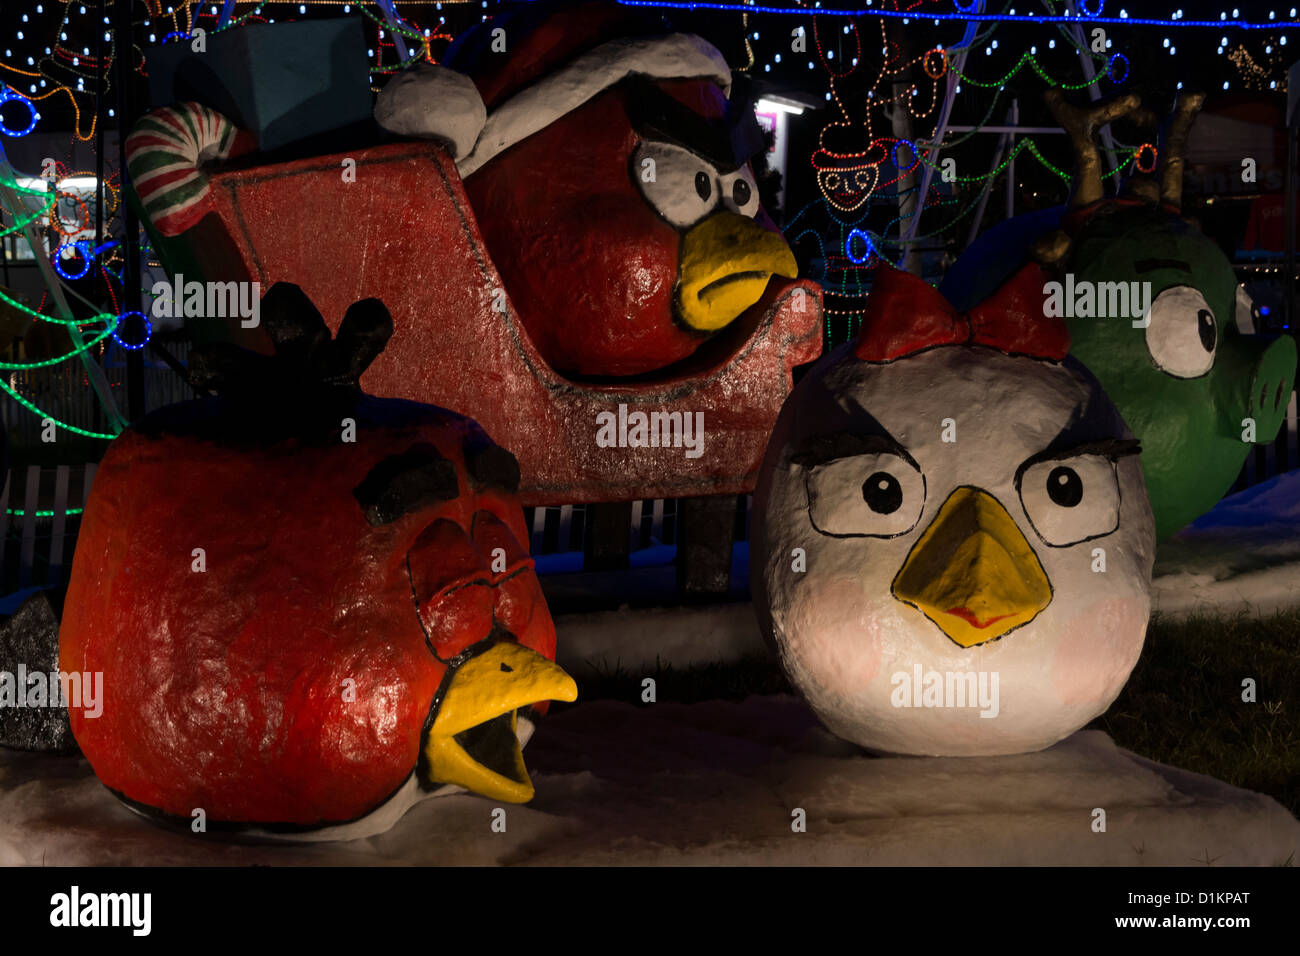 paper mache statues of angry birds in a christmas display at hidlago texas usa